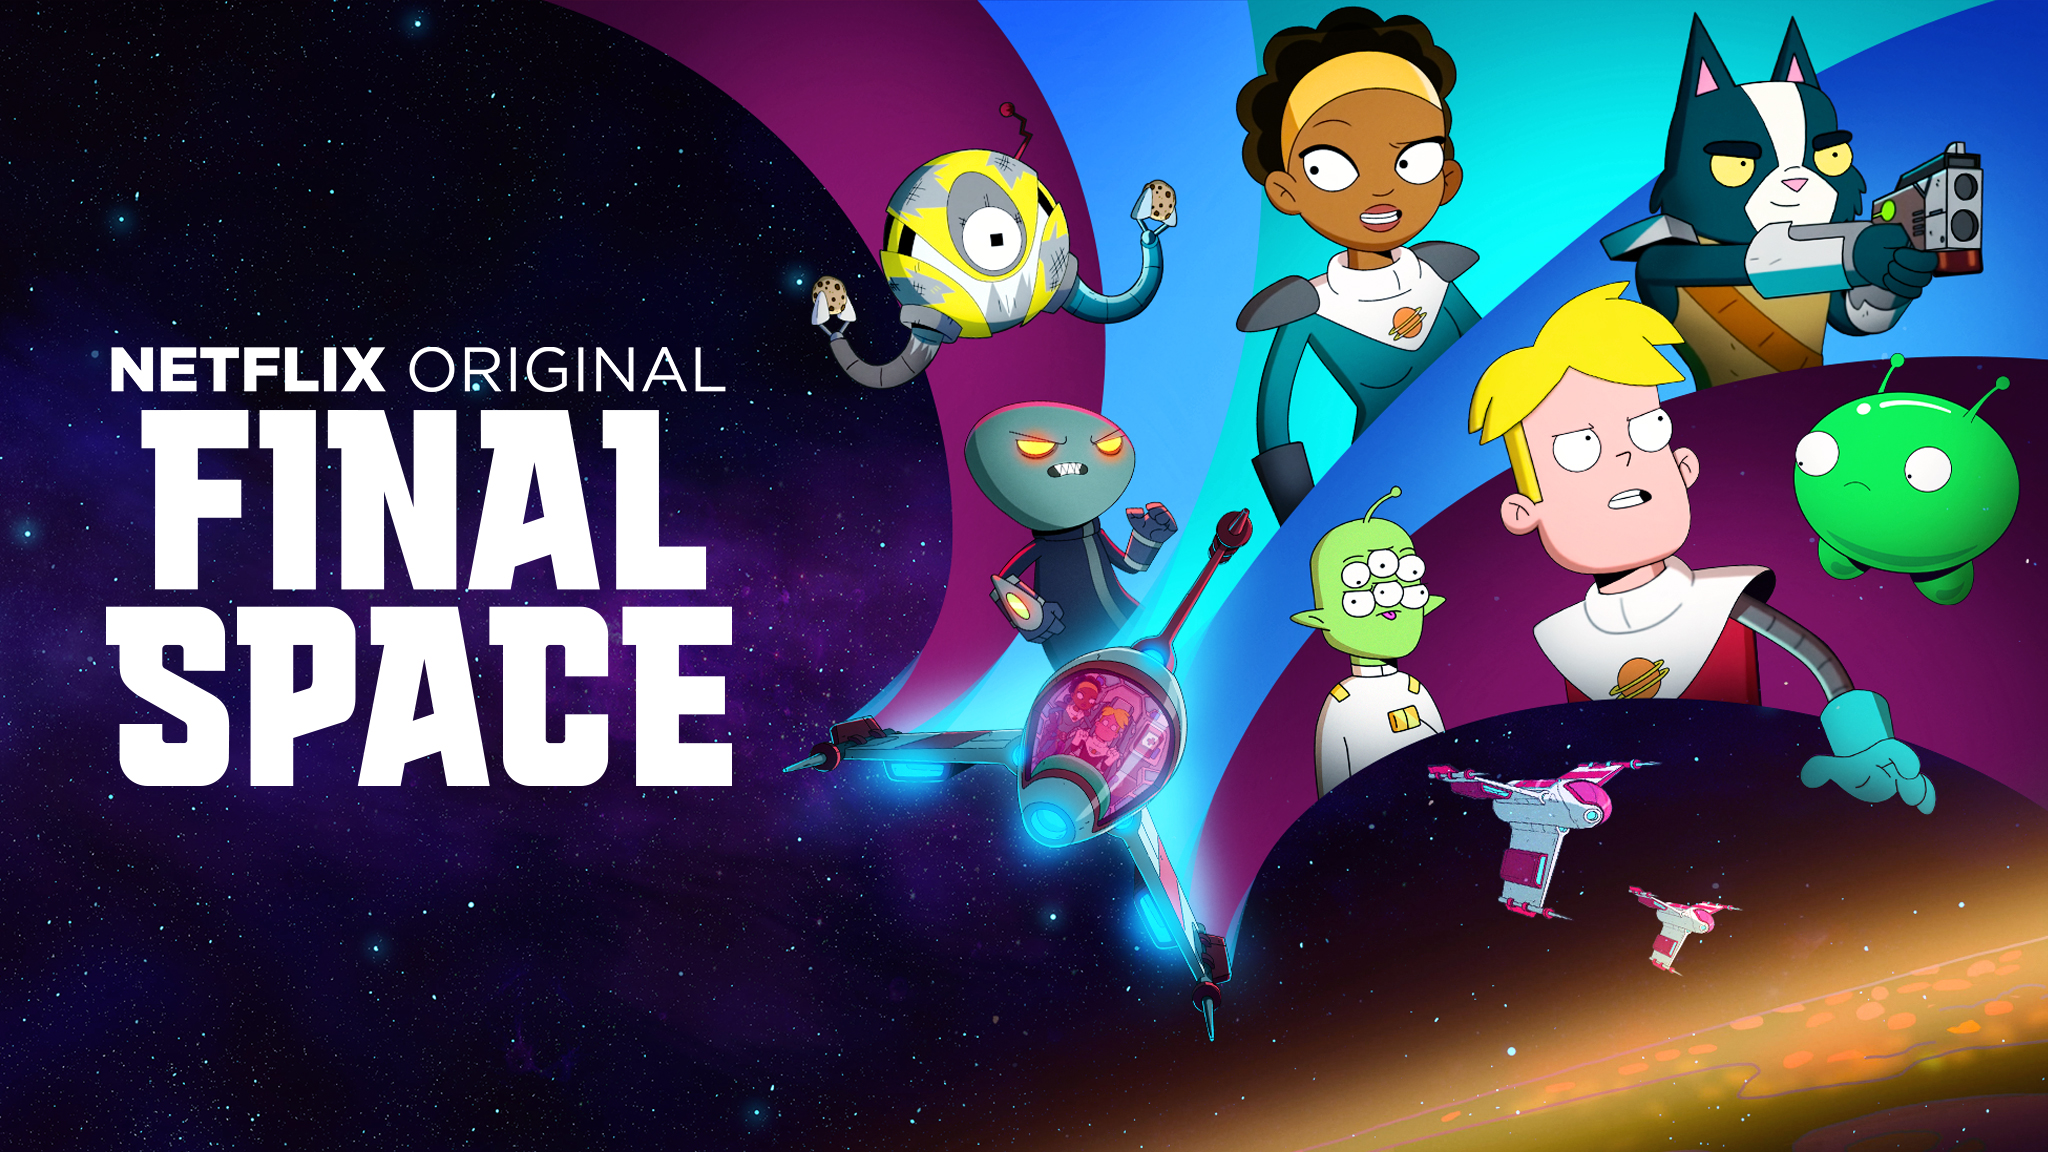 Wallpaper Characters from Final Space